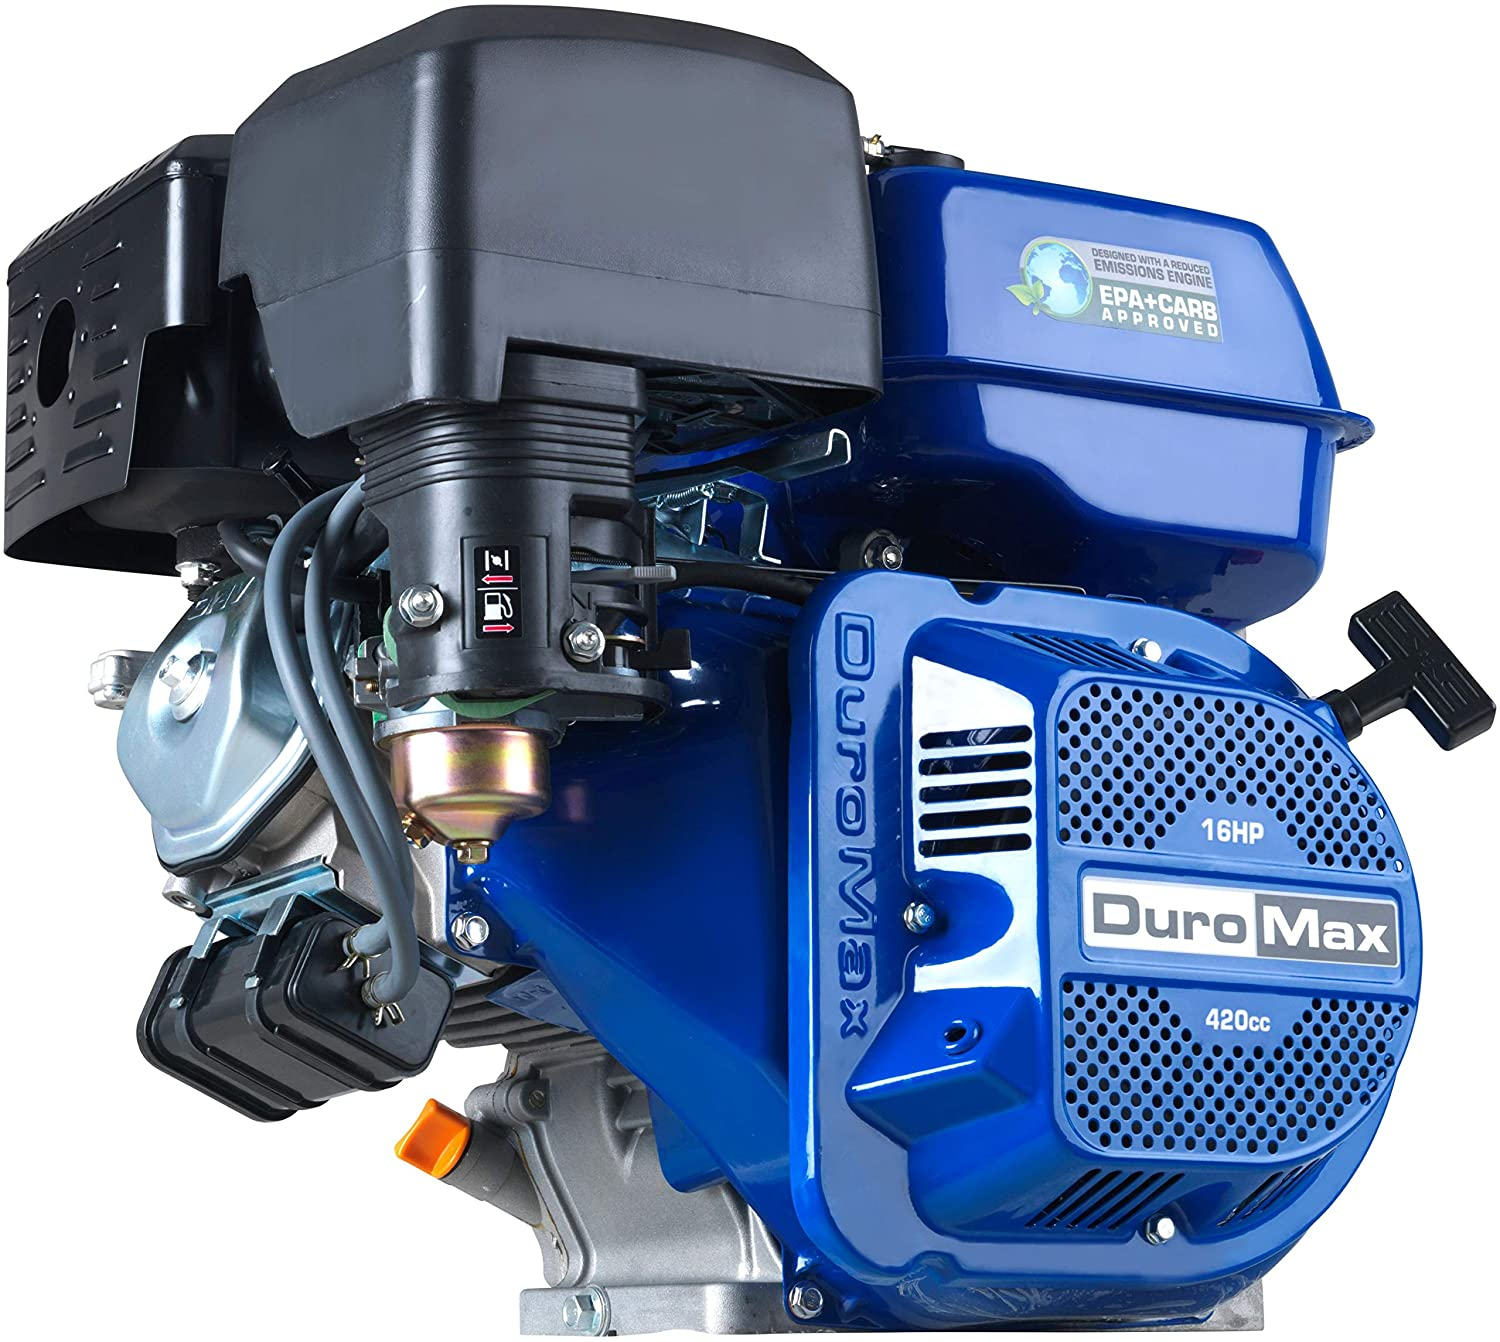 Duromax XP16HP Shaft Recoil Start 16 HP Engine,Blue